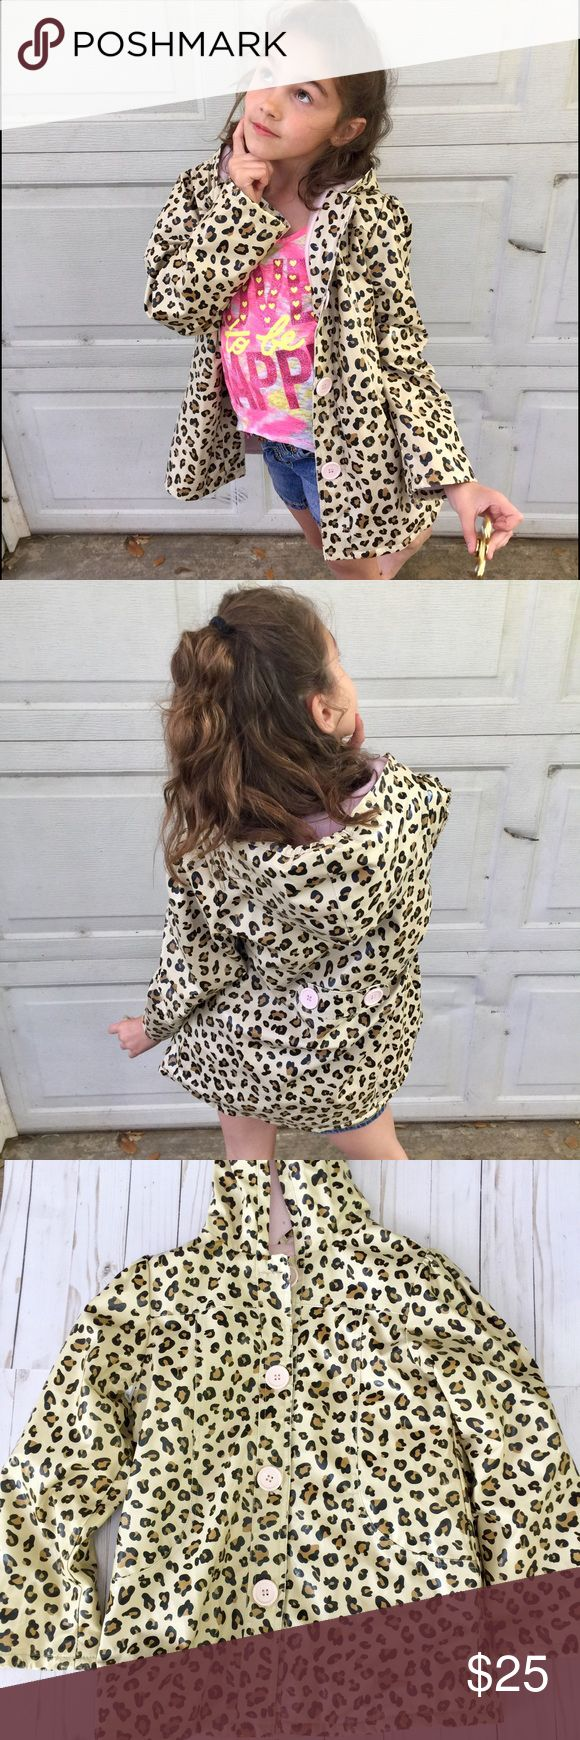 .•Leopard Raincoat• Cute raincoat with big pink buttons. Perfect for those rainy days. Pair with some rain boots to compete this look. Kids Headquarters Jackets & Coats Raincoats